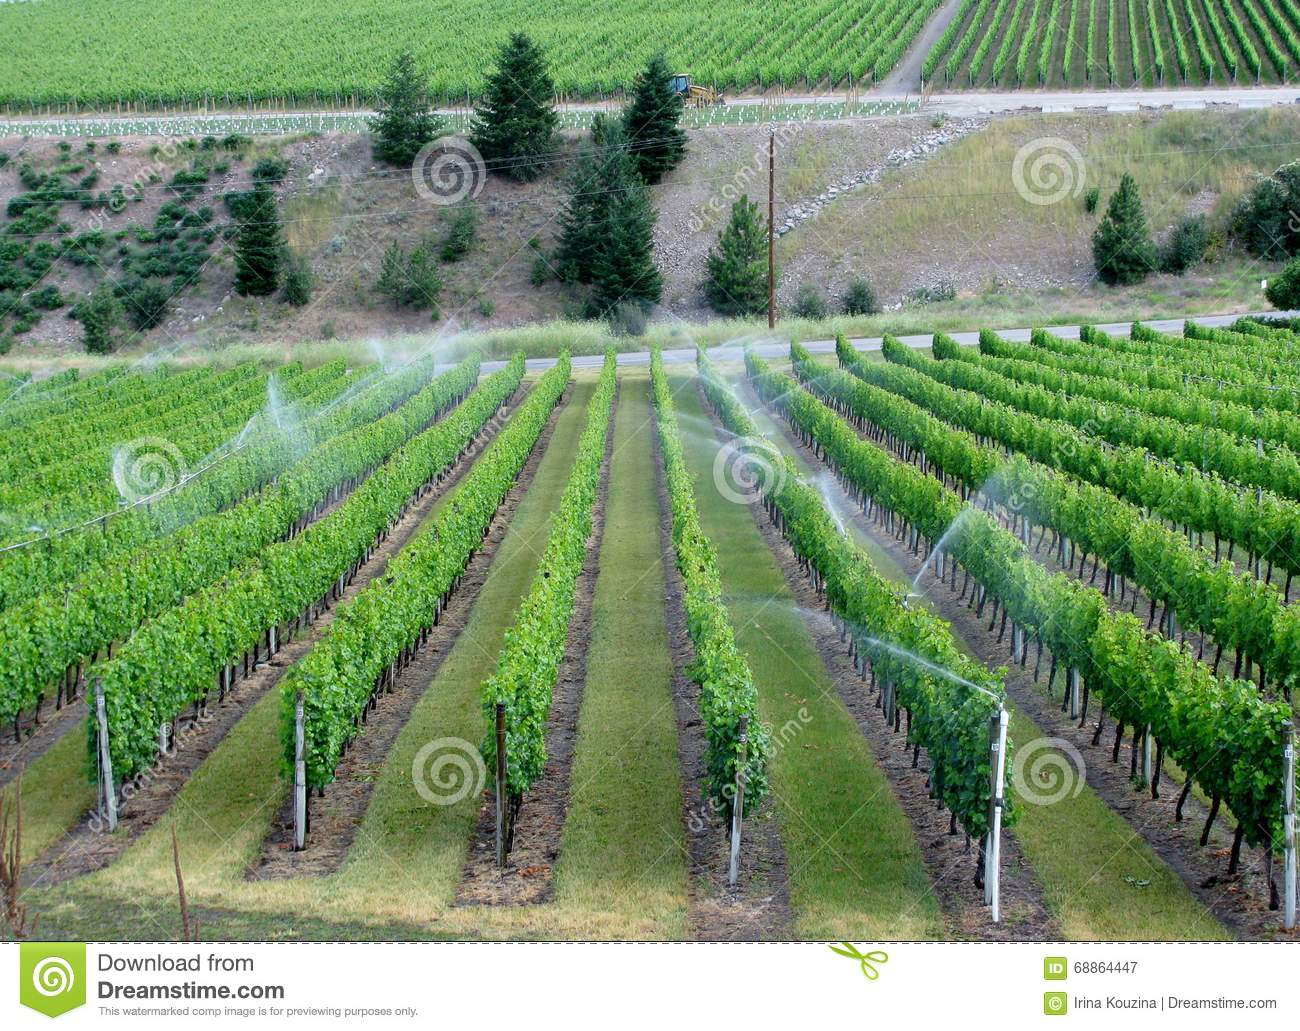 Irrigation system on a wine field